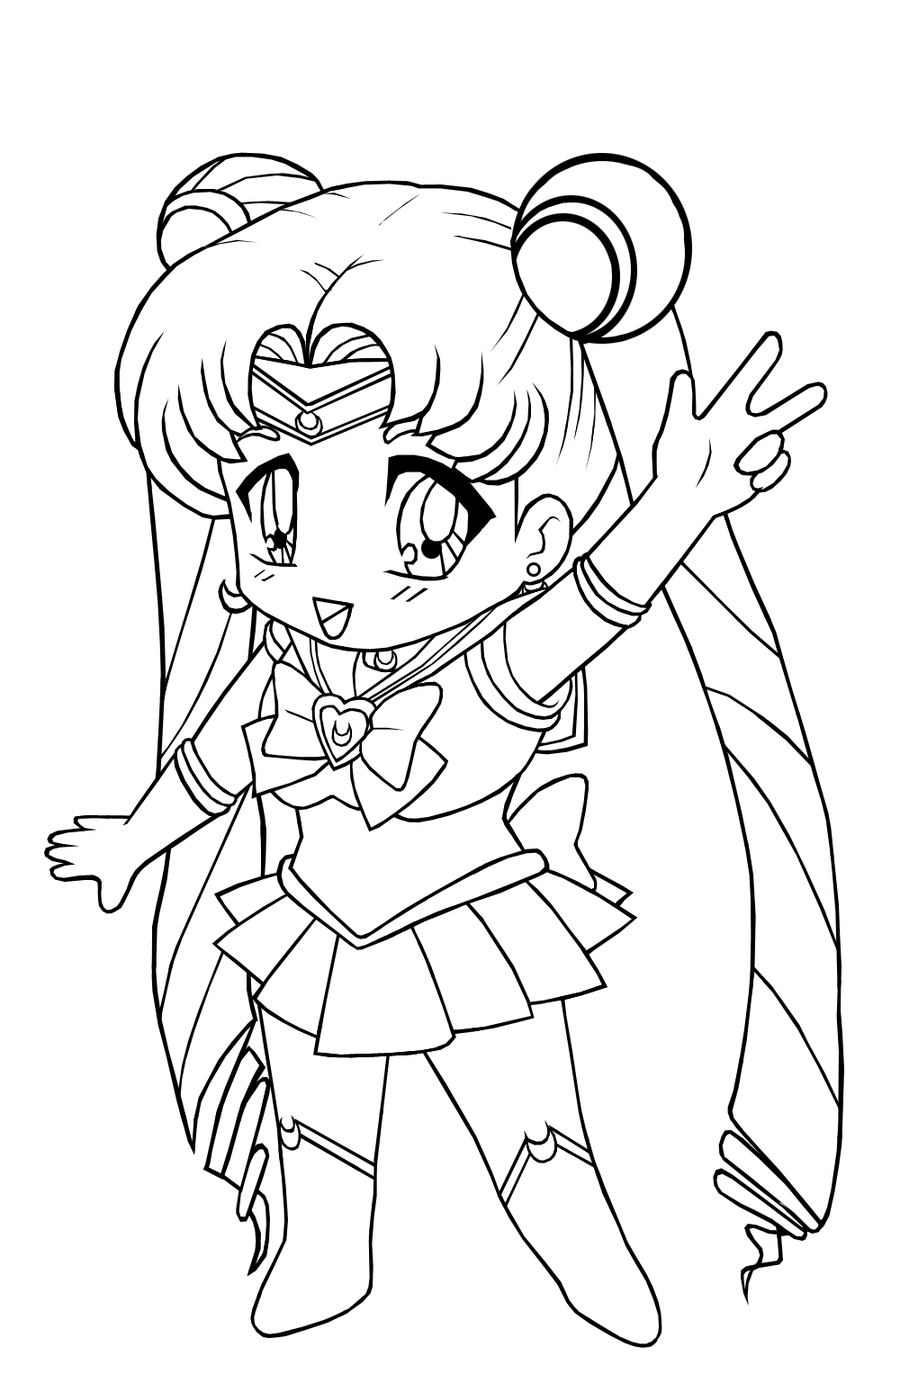 cat girl coloring pages anime cat girl coloring pages at getcoloringscom free cat girl pages coloring